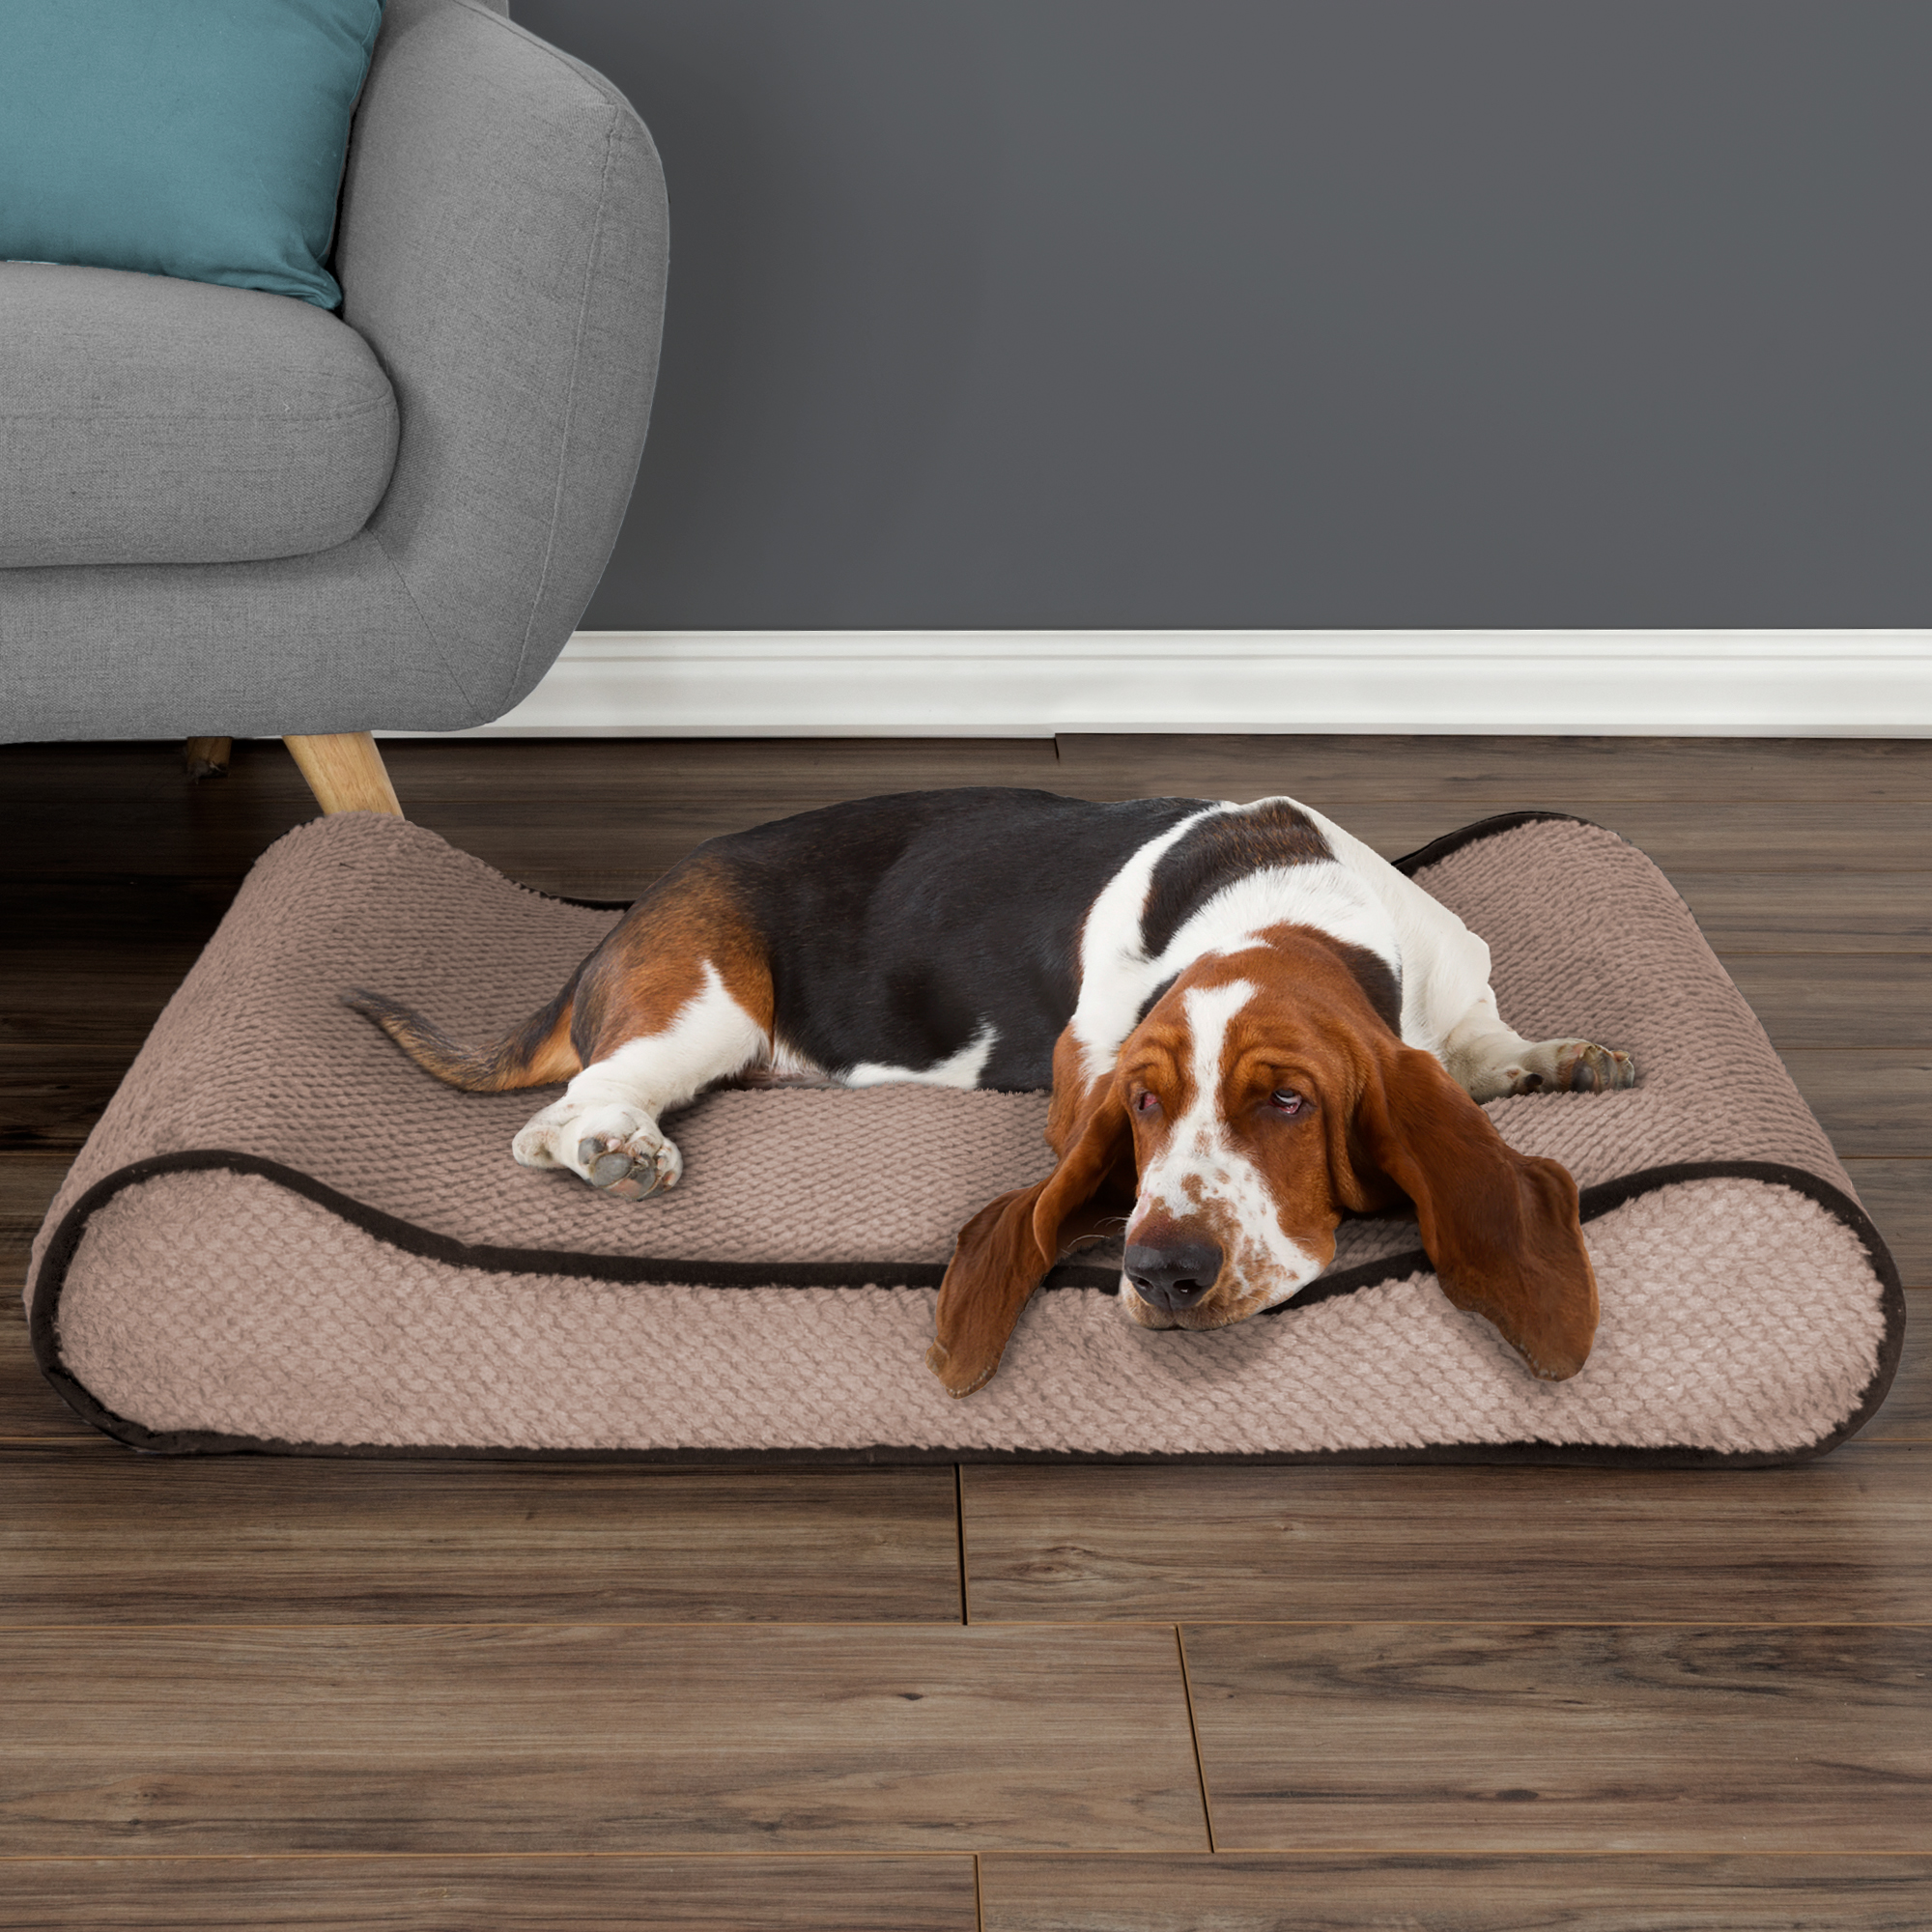 Orthopedic Pet Bed Lounger with Memory Foam 36Lx25Wx6.5H Blue by PETMAKER